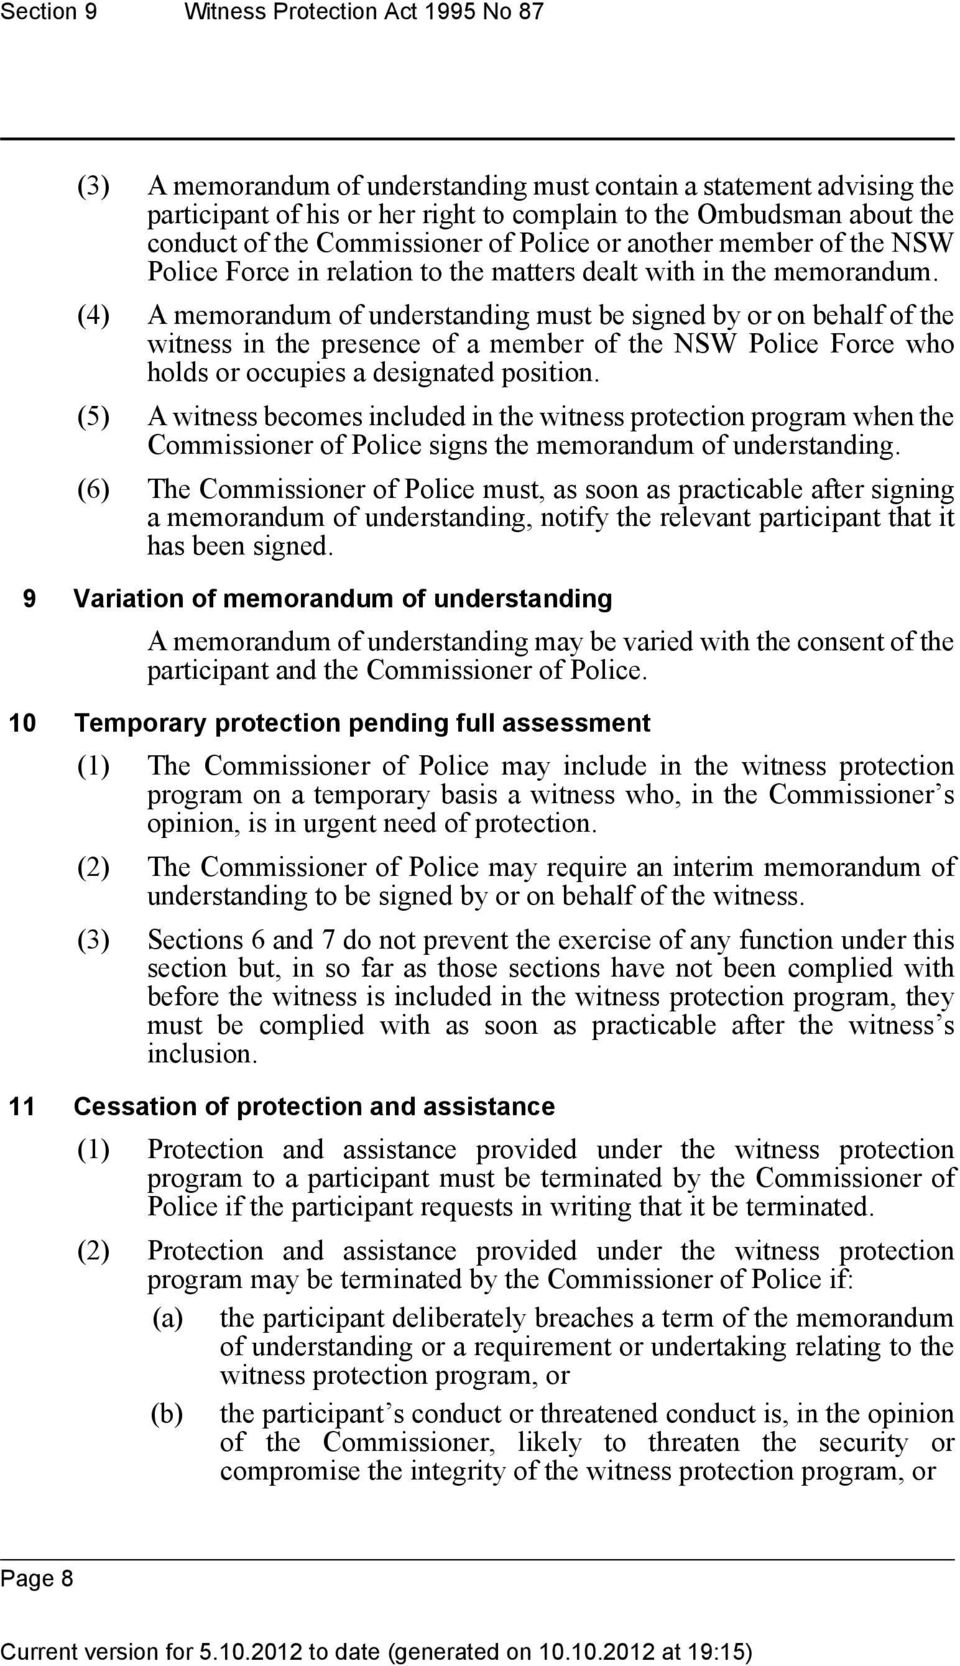 (4) A memorandum of understanding must be signed by or on behalf of the witness in the presence of a member of the NSW Police Force who holds or occupies a designated position.